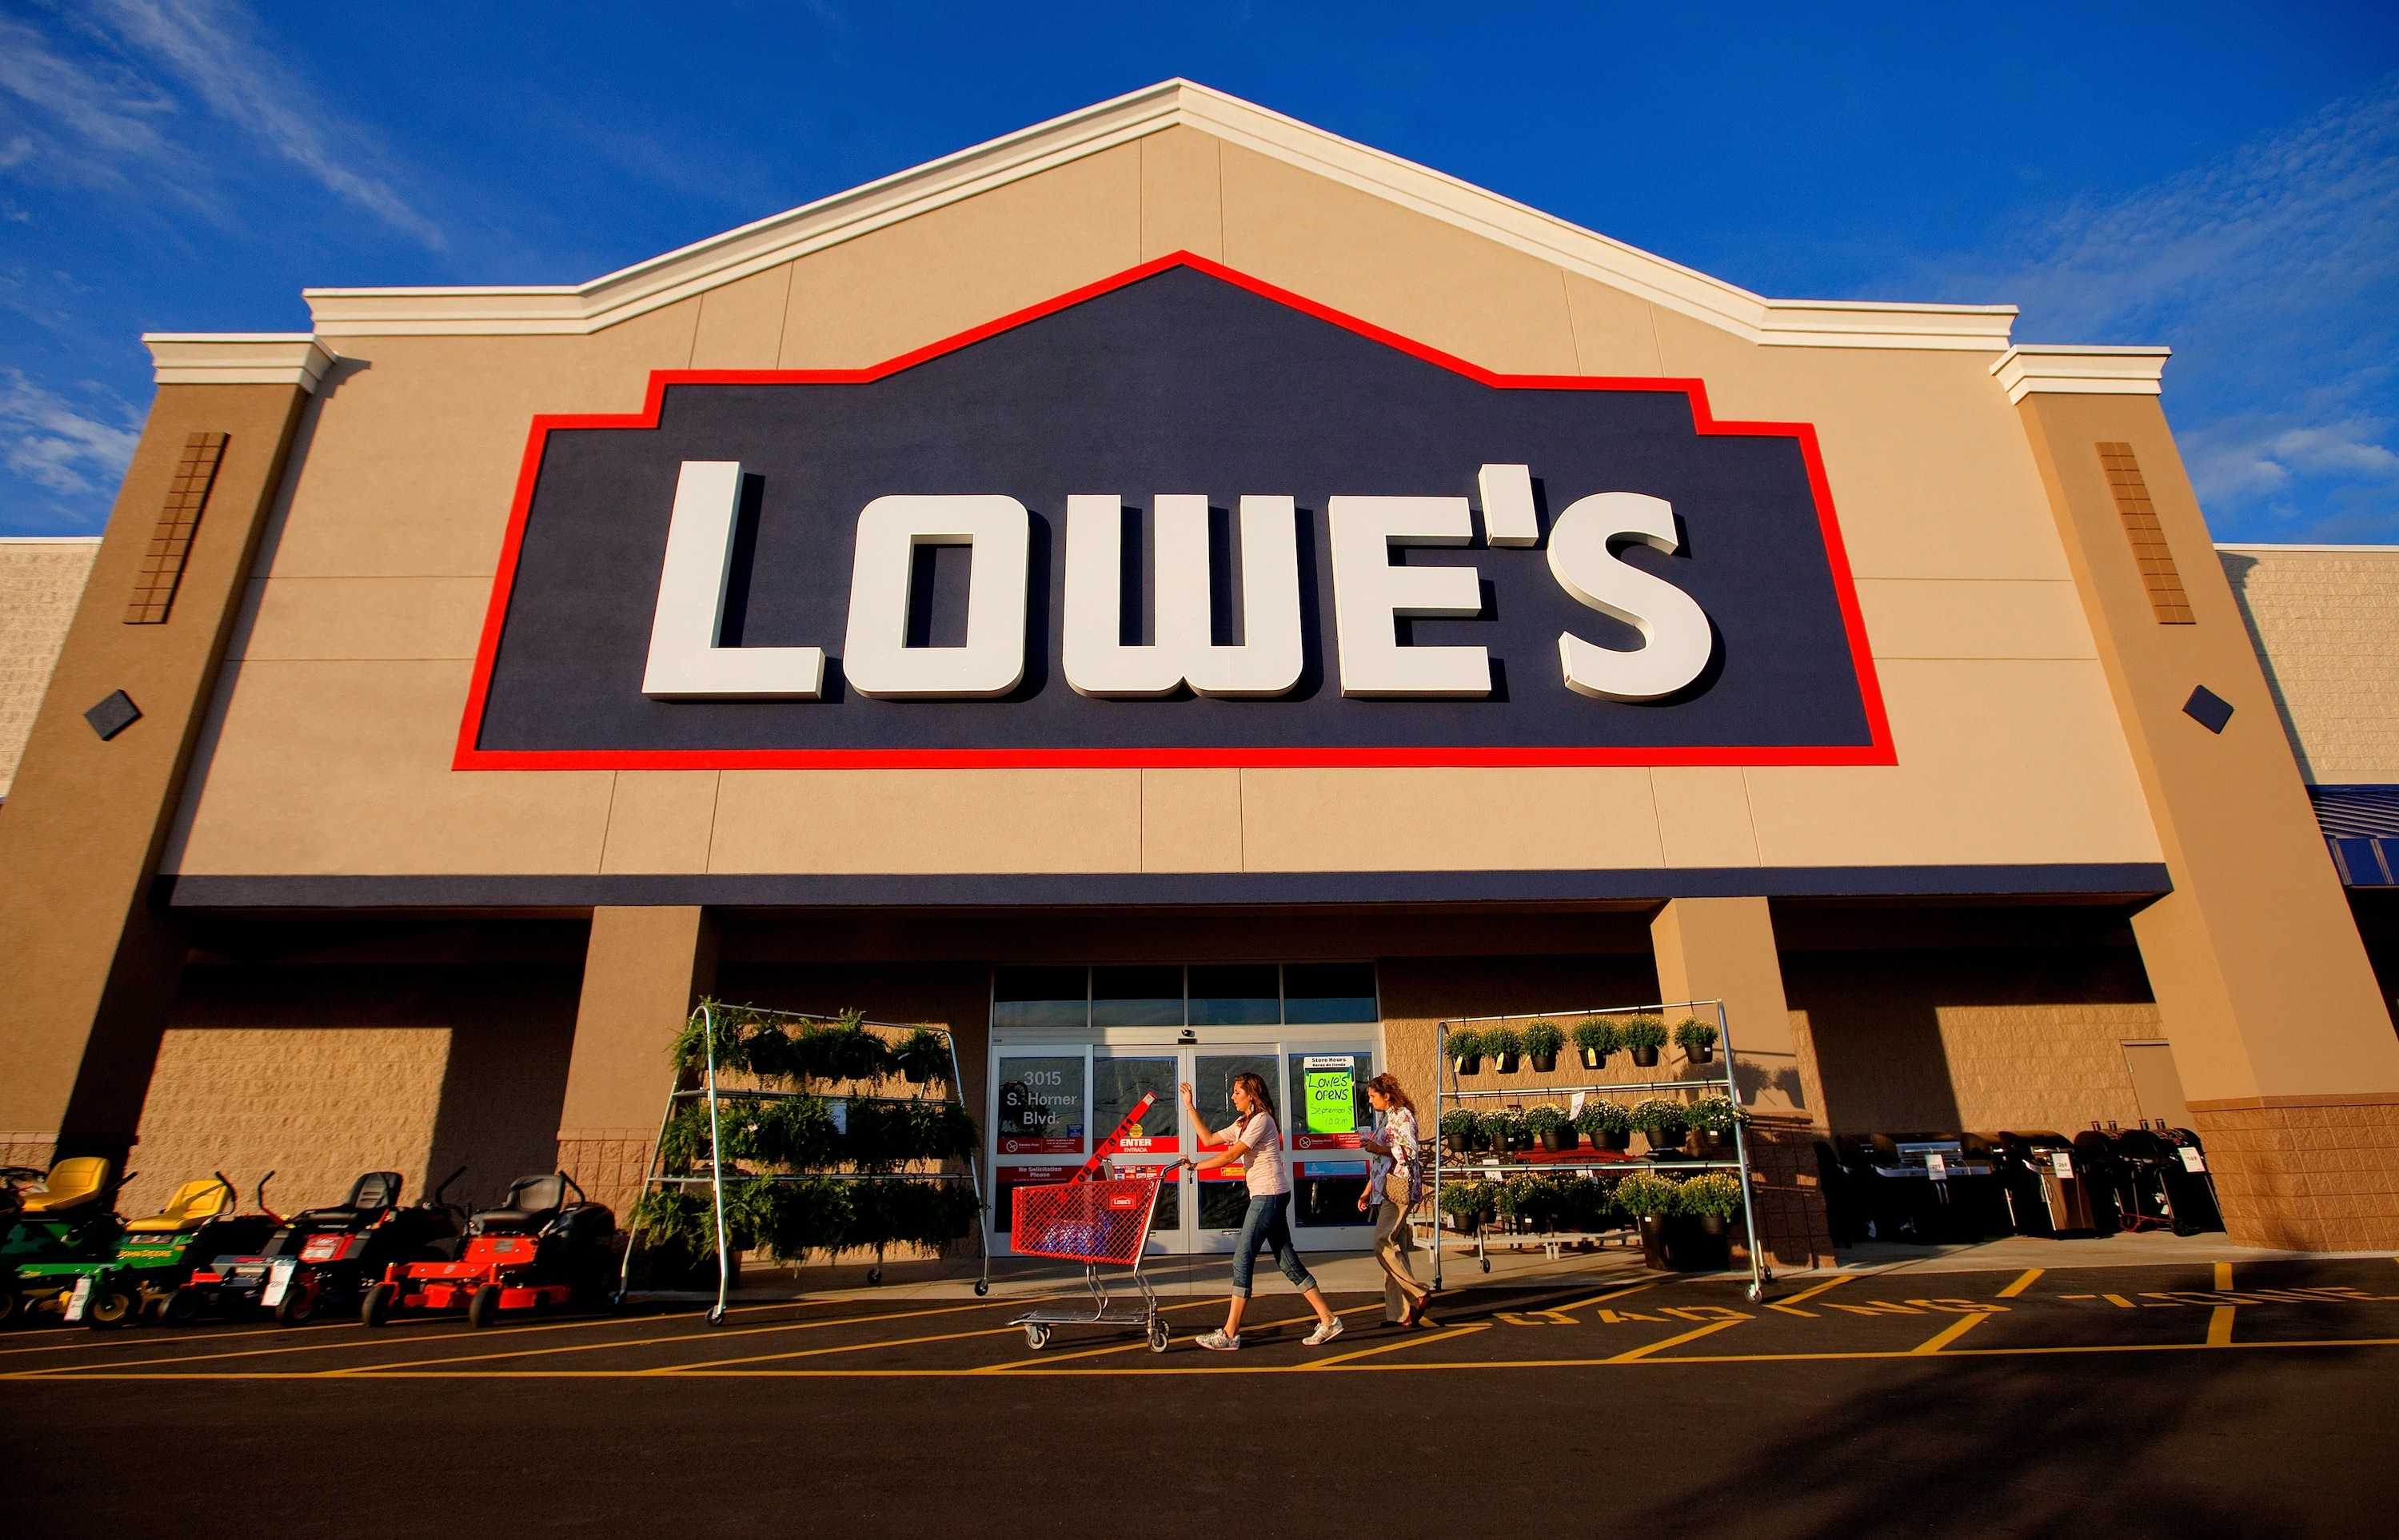 Lowes Store near me, Lowes near me